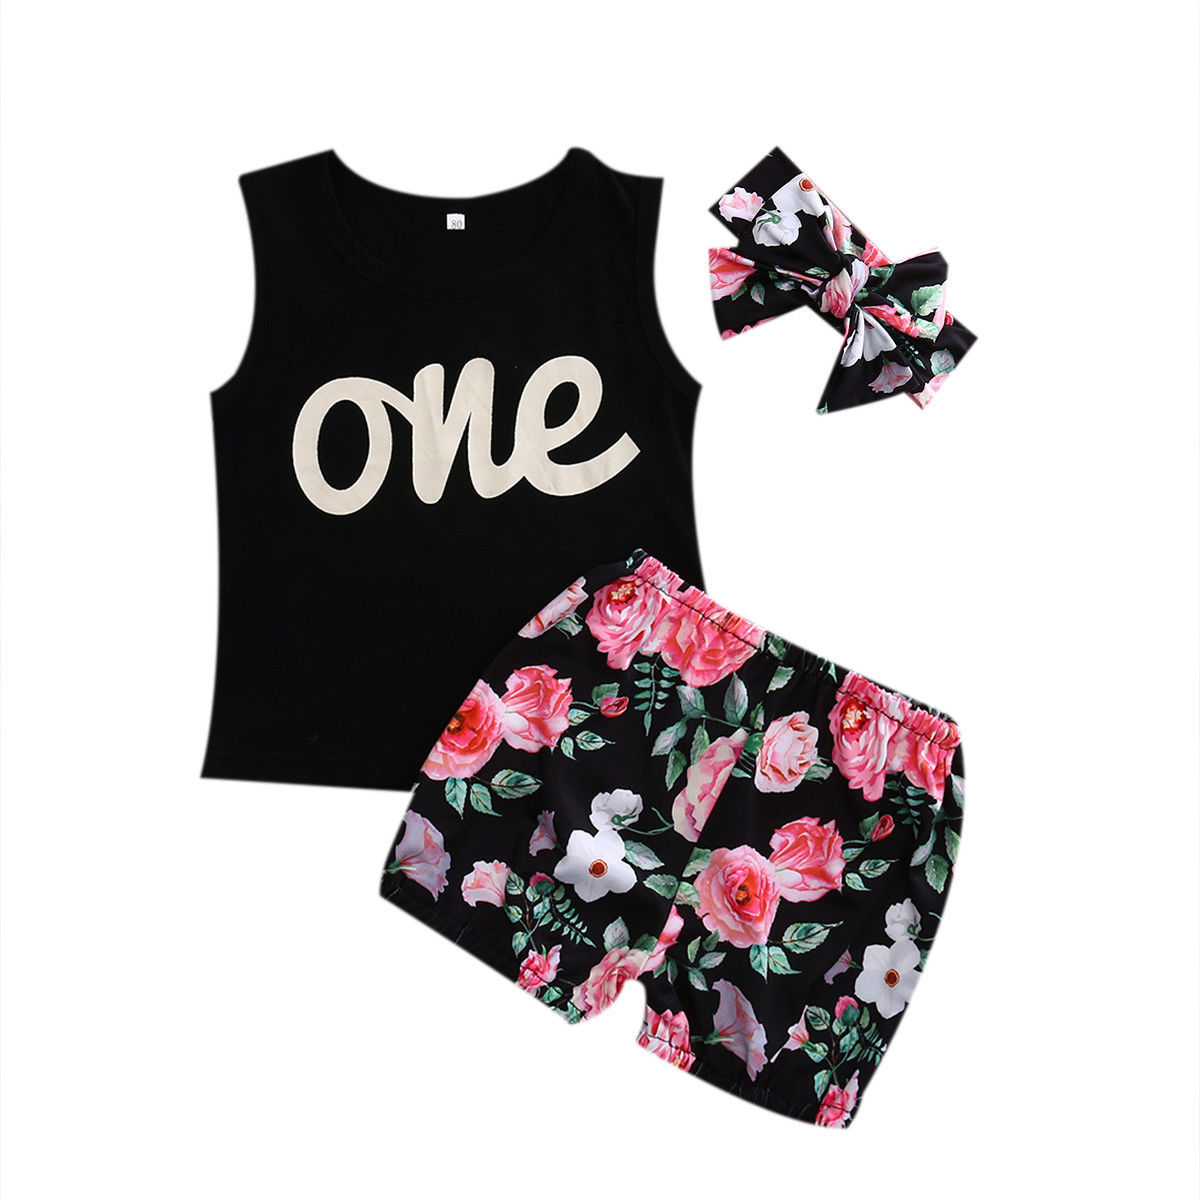 3PCS Newborn Infant Baby Girls Outfit Clothes Sleeveless Tand Top+ Floral Short +Headband Clothing Set